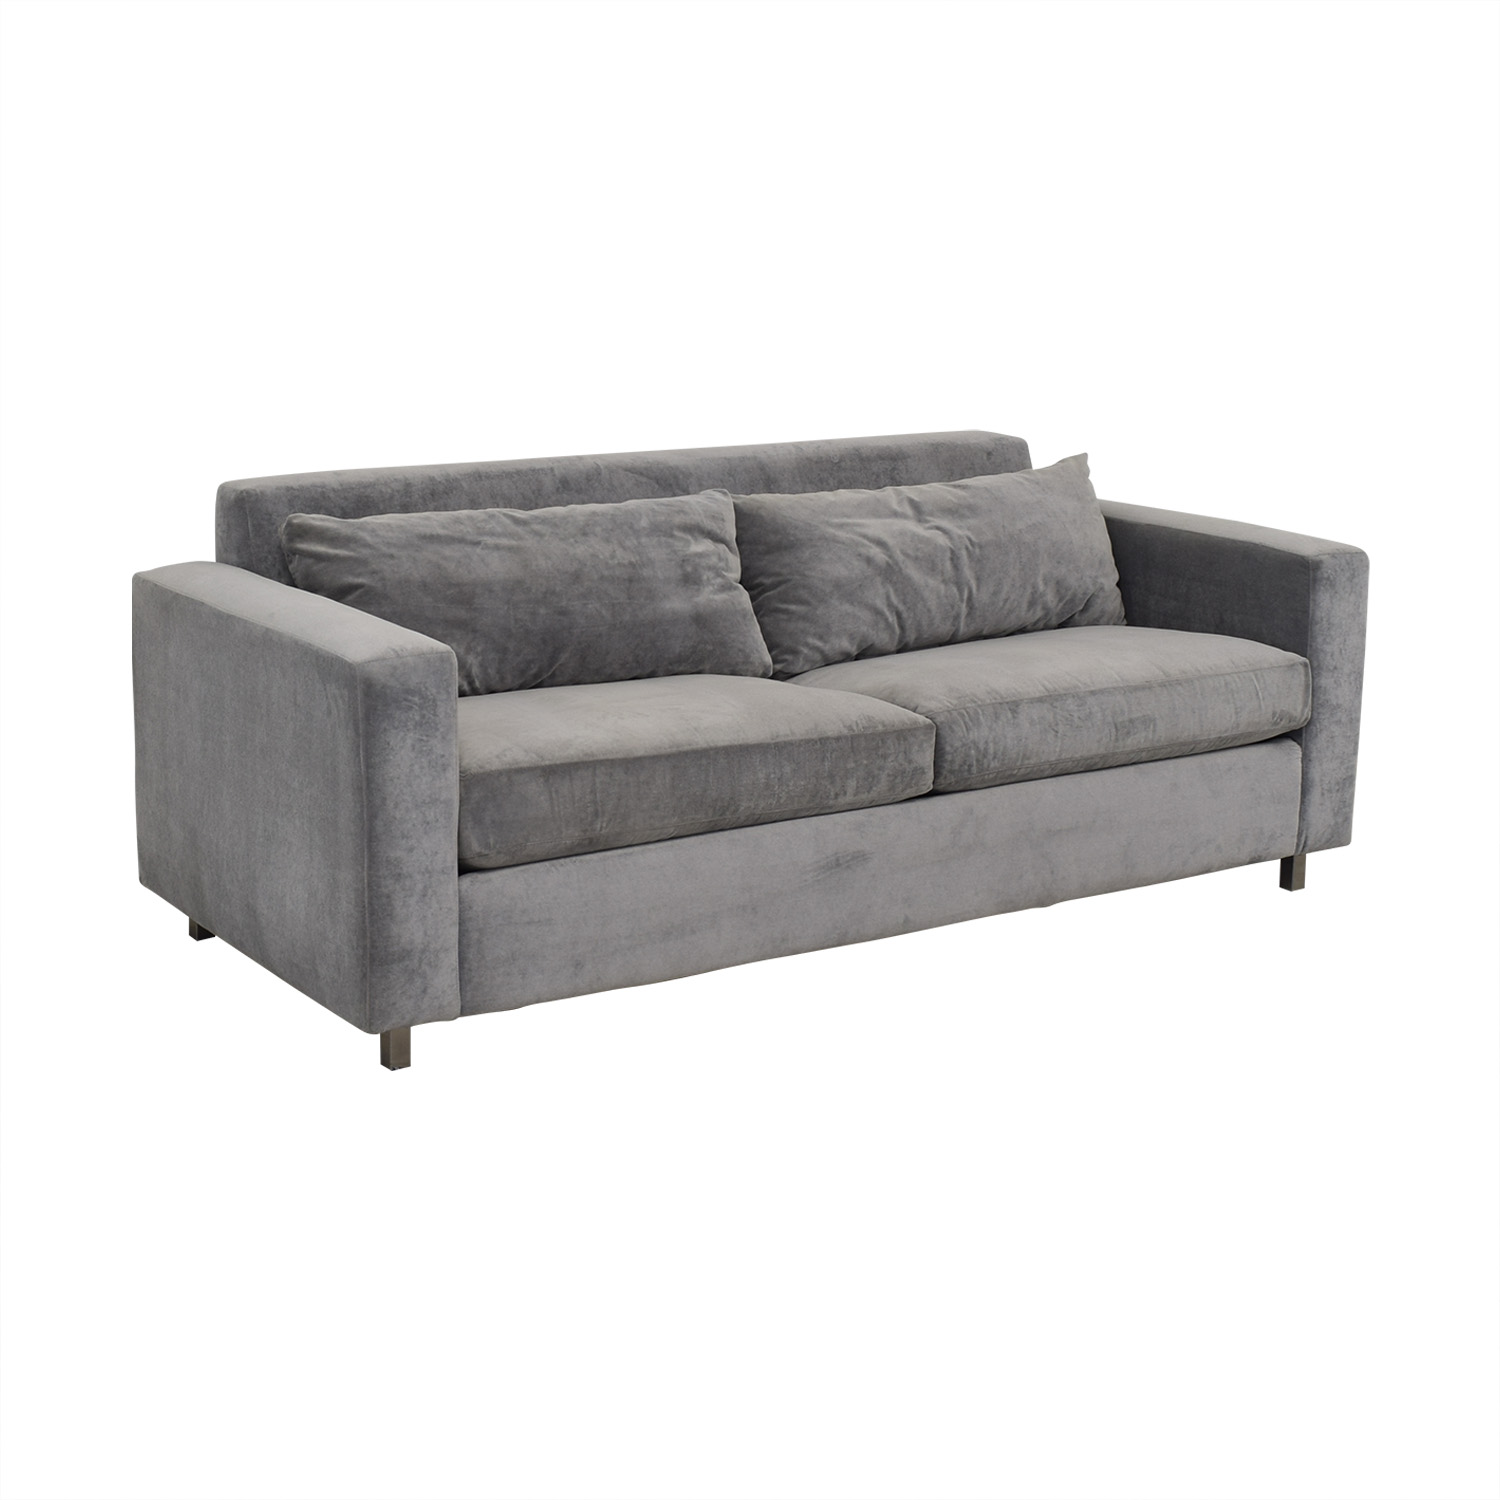 ABC Carpet & Home ABC Carpet & Home Cobble Hill Queen Lucali Sleeper Sofa coupon